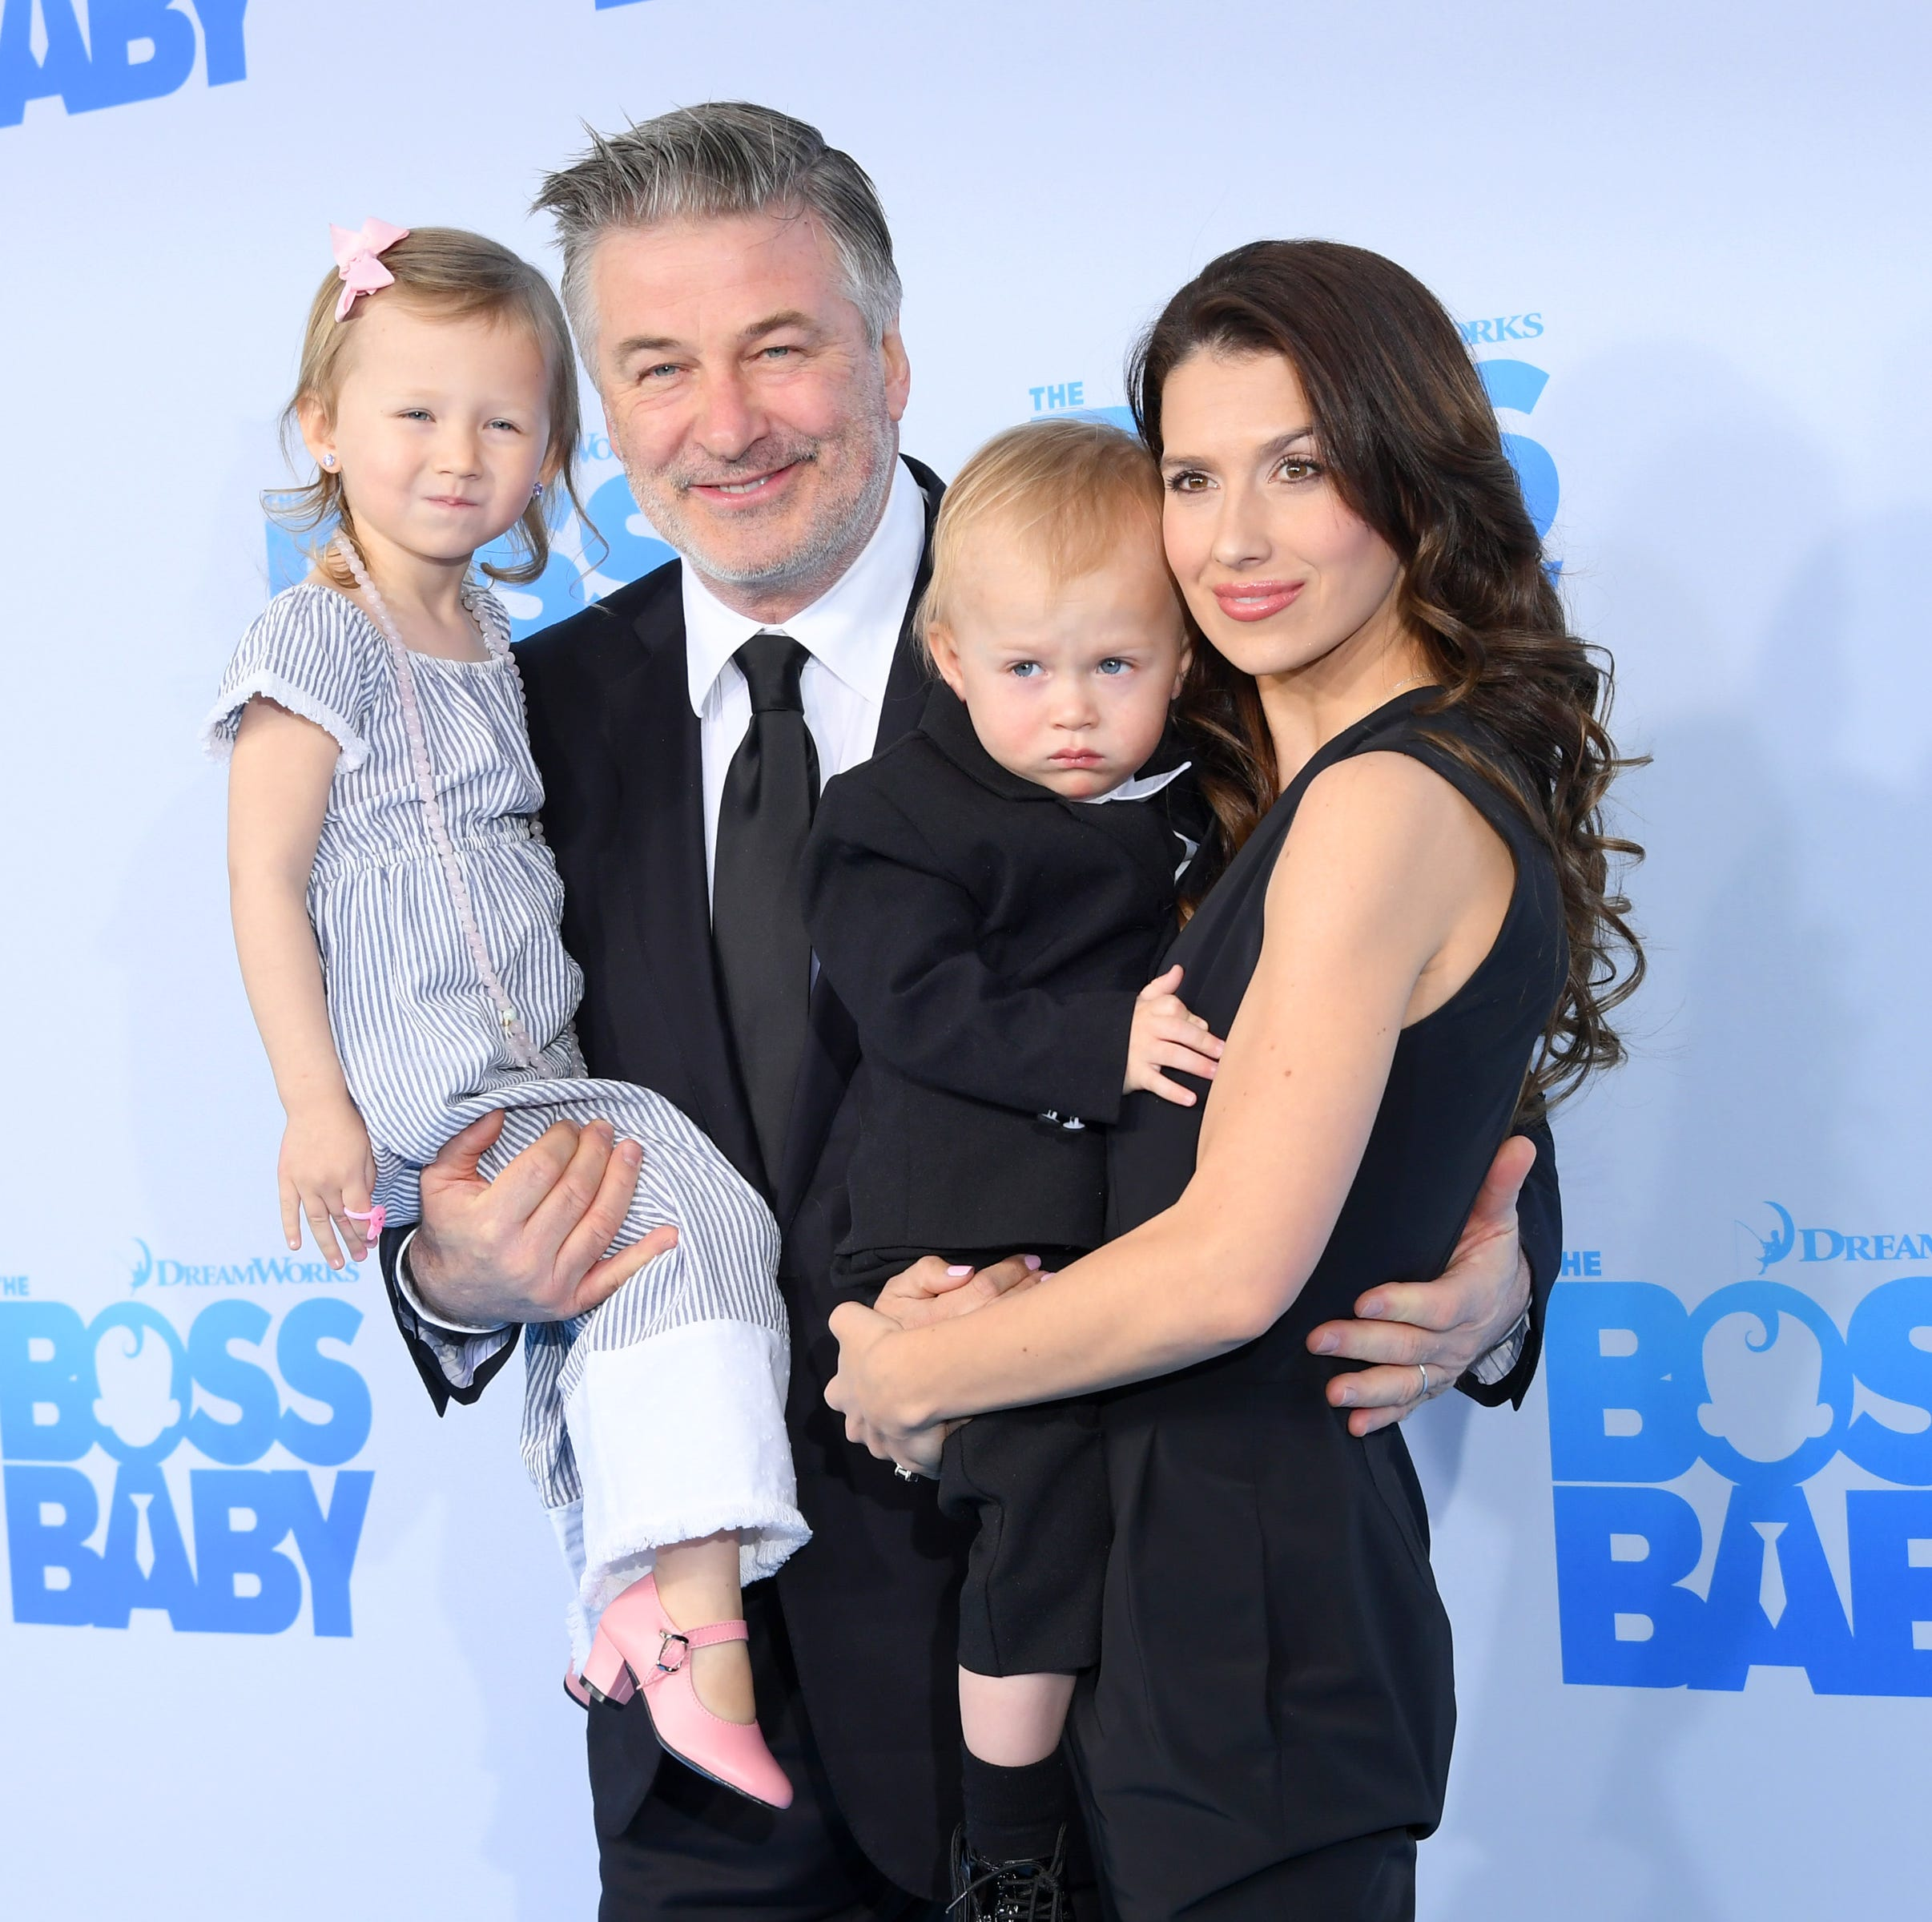 Actor Alec Baldwin and wife Hilaria Baldwin are expecting their fourth child together. This will be Alec's fifth child.